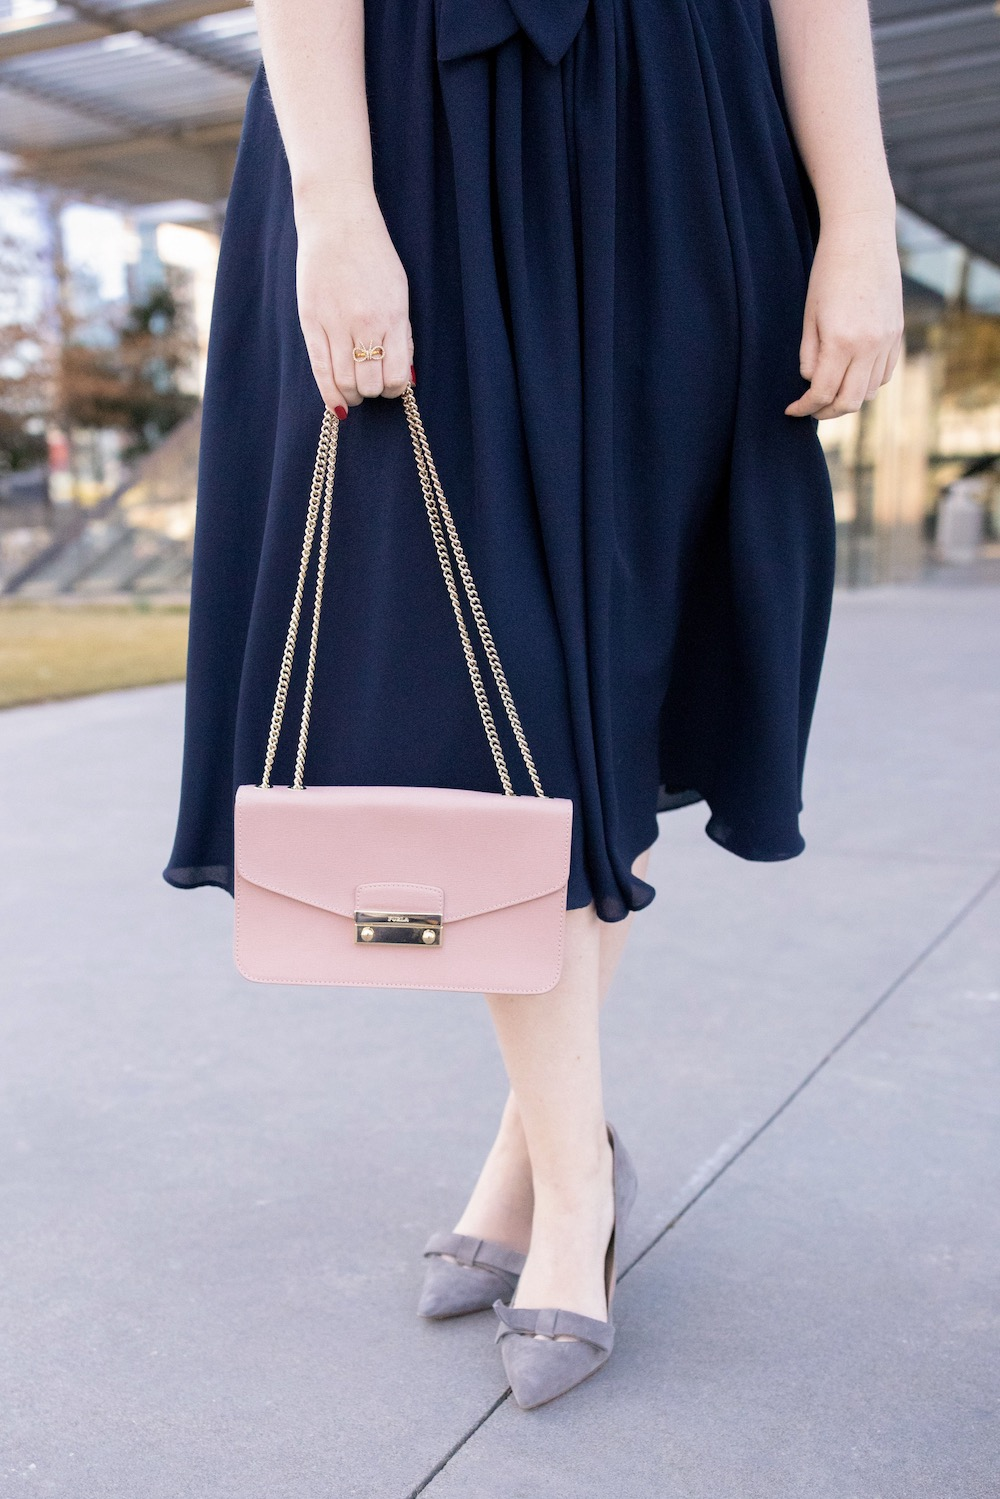 Ann Taylor Pumps | Comfy Heels to Wear to a Party | Best Heels to Wear to Work | Furla Metropolis Bag | Best Heels Under $200